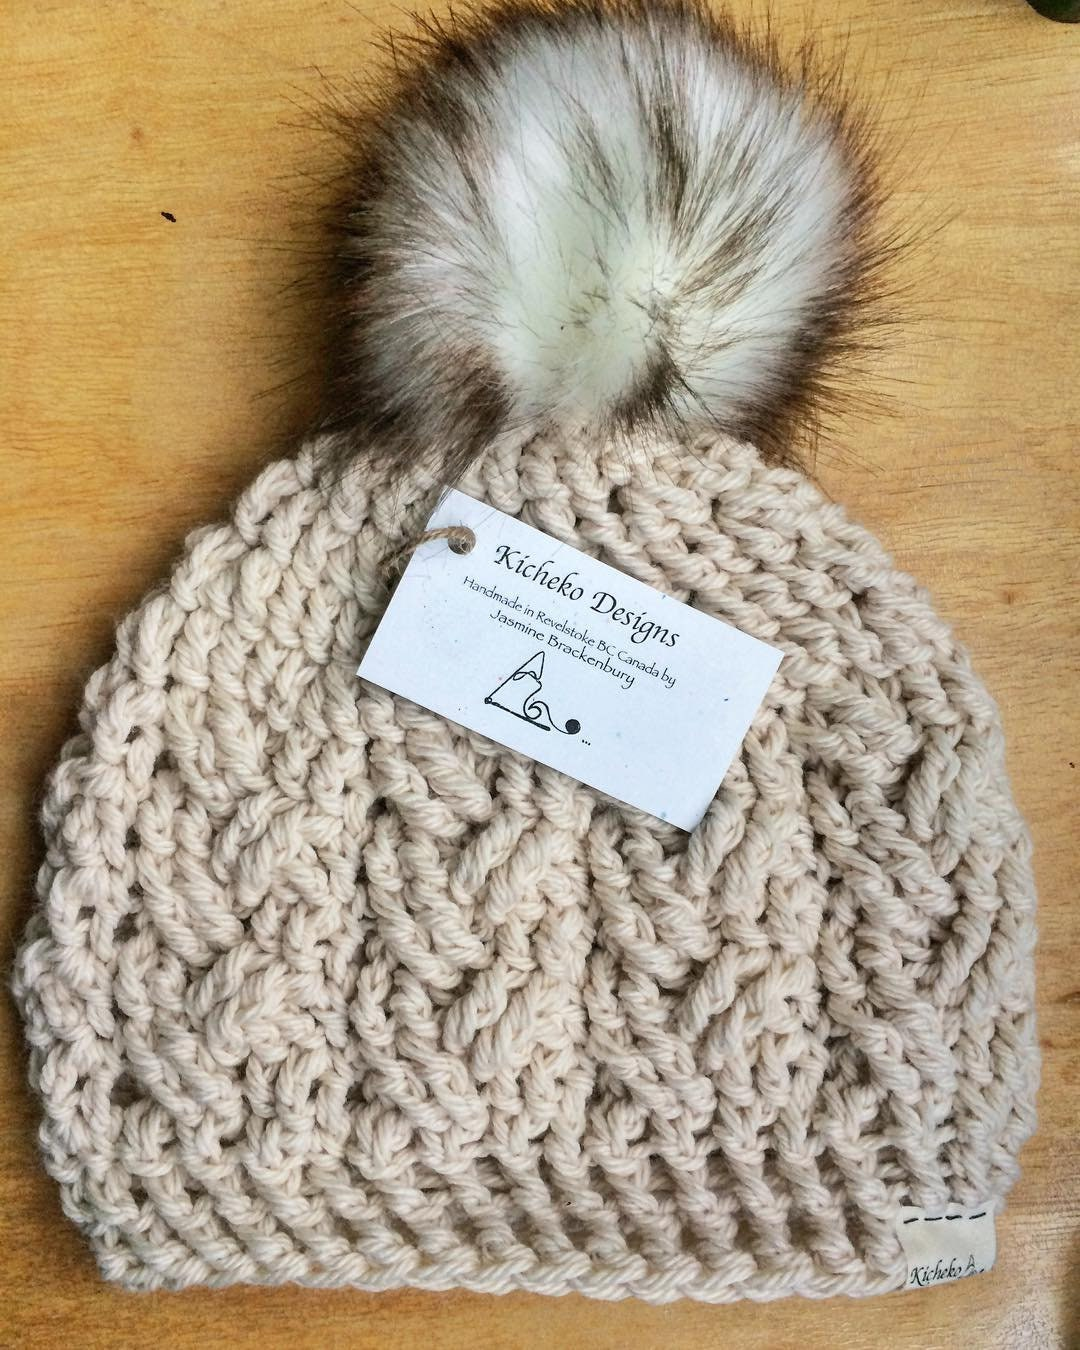 ea0831e6c0d Holden Cable Crochet Hat   Baby ~ Toddler ~ Child ~ Adult   Merino Wool    Cable Toque   Cable Hat   Crochet Cable Beanie